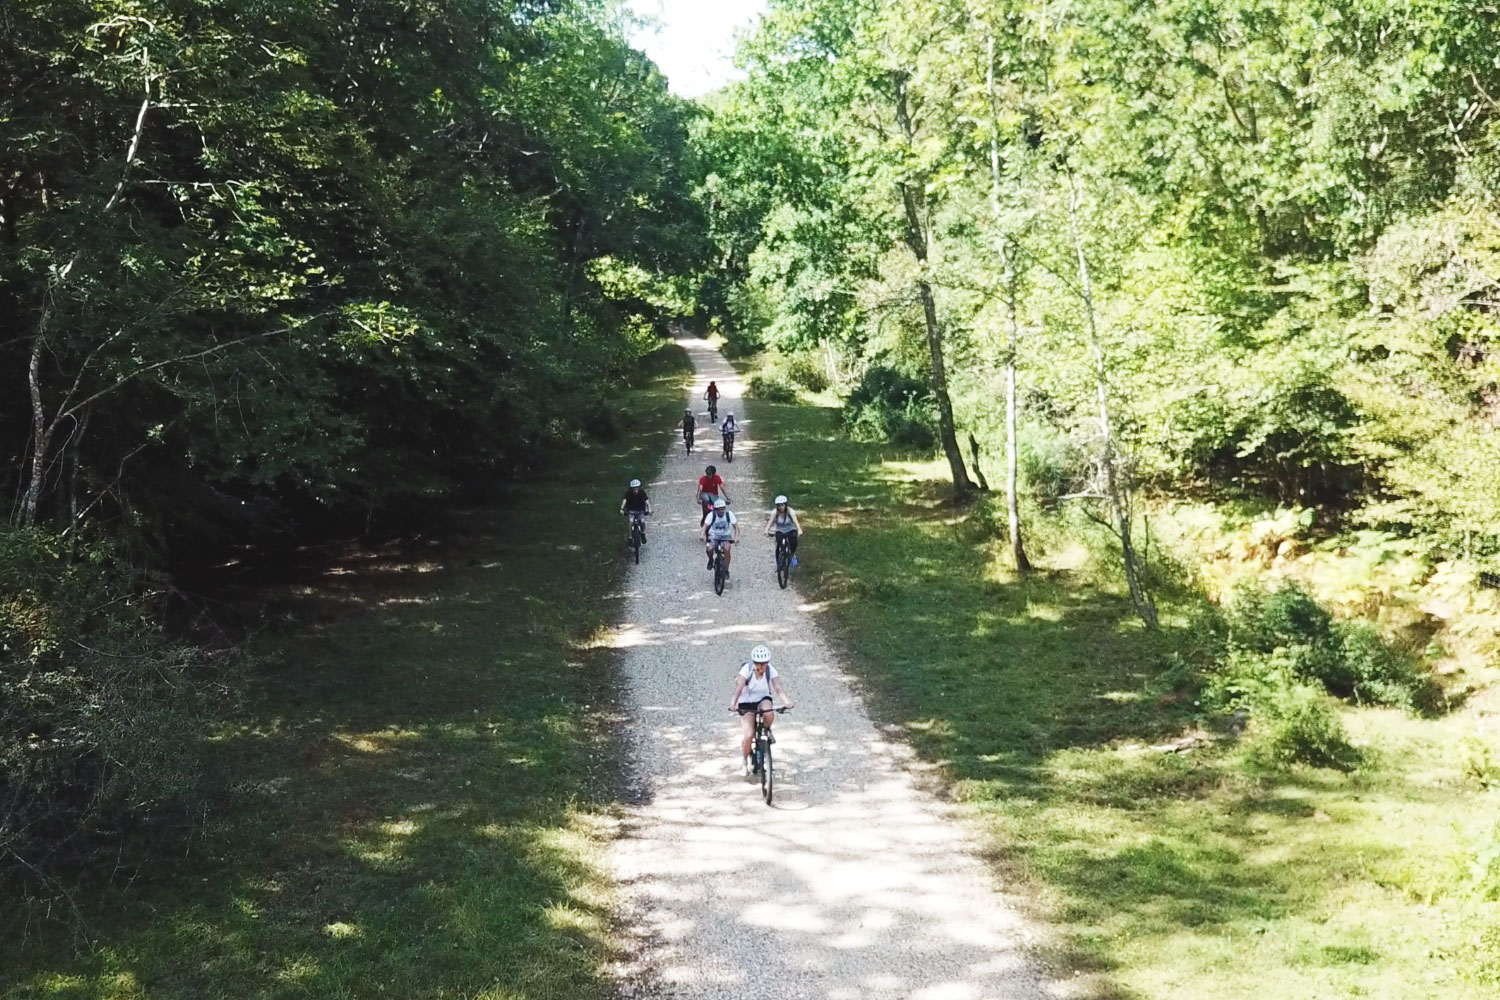 A group of friends enjoying New Forest bike hire.